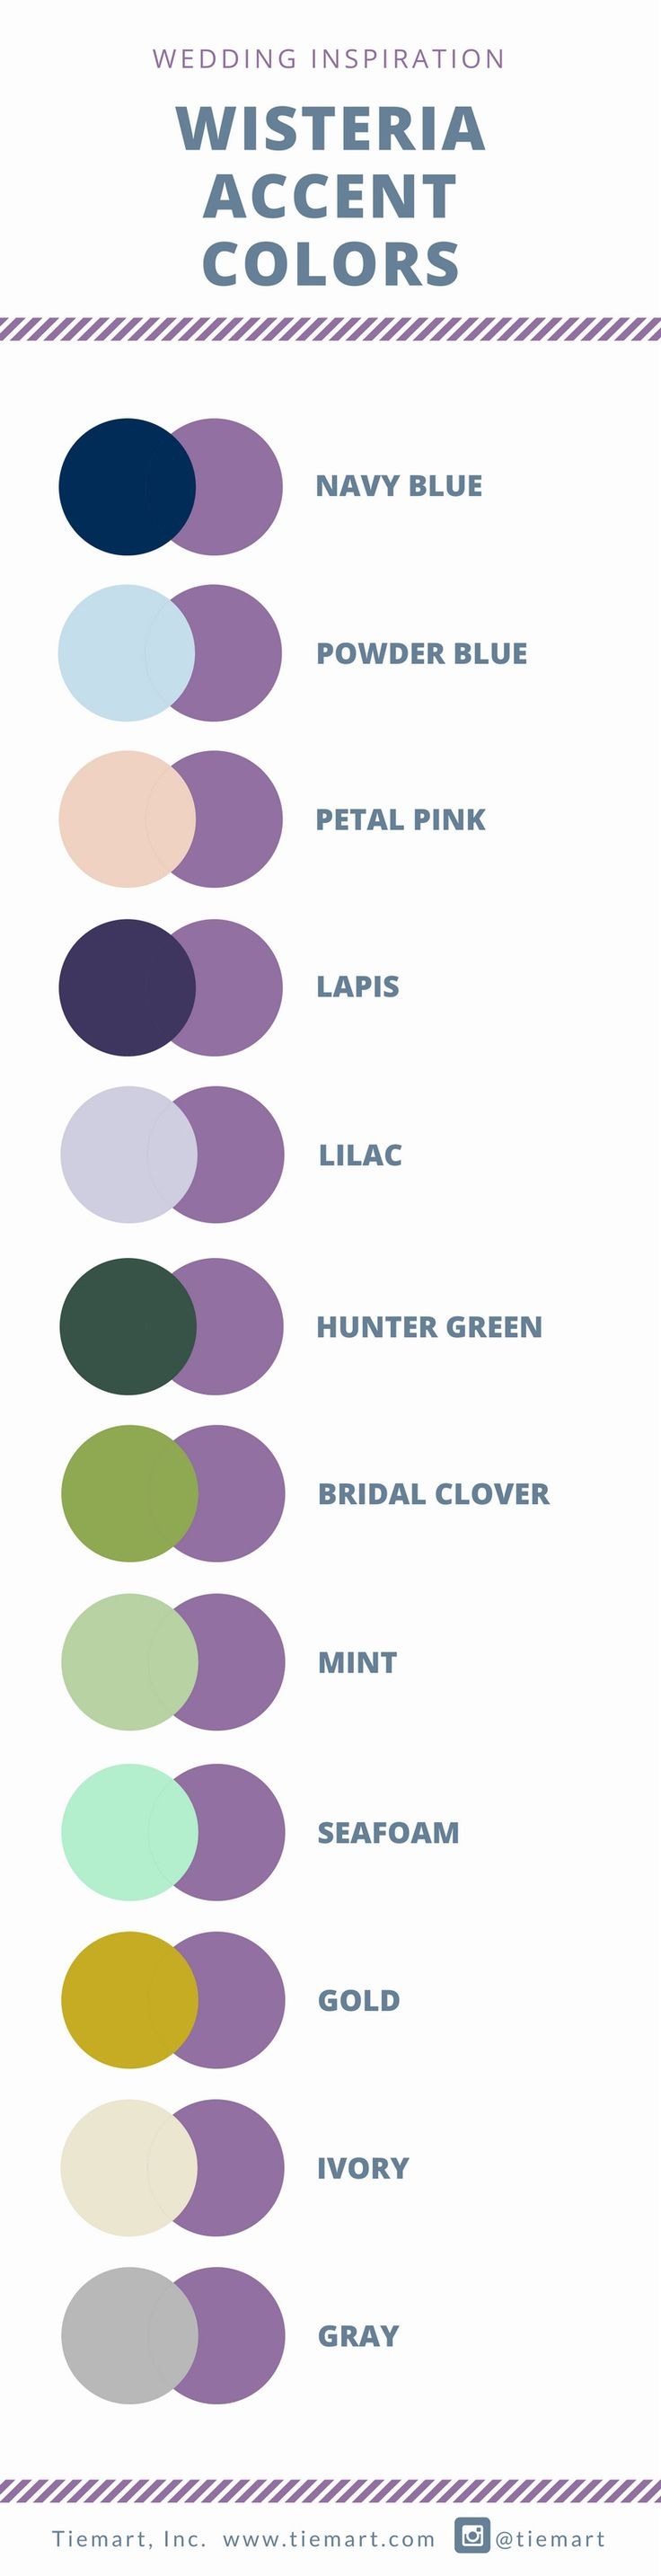 Wisteria is a soft, romantic wedding hue that works well in any season. Wisteria pops with navy accents, but can easily be coupled with other muted purple shades. On par with 2017 color trends, mix wisteria with green shades, from mint to hunter green. Gray is the most popular neutral matched with wisteria.